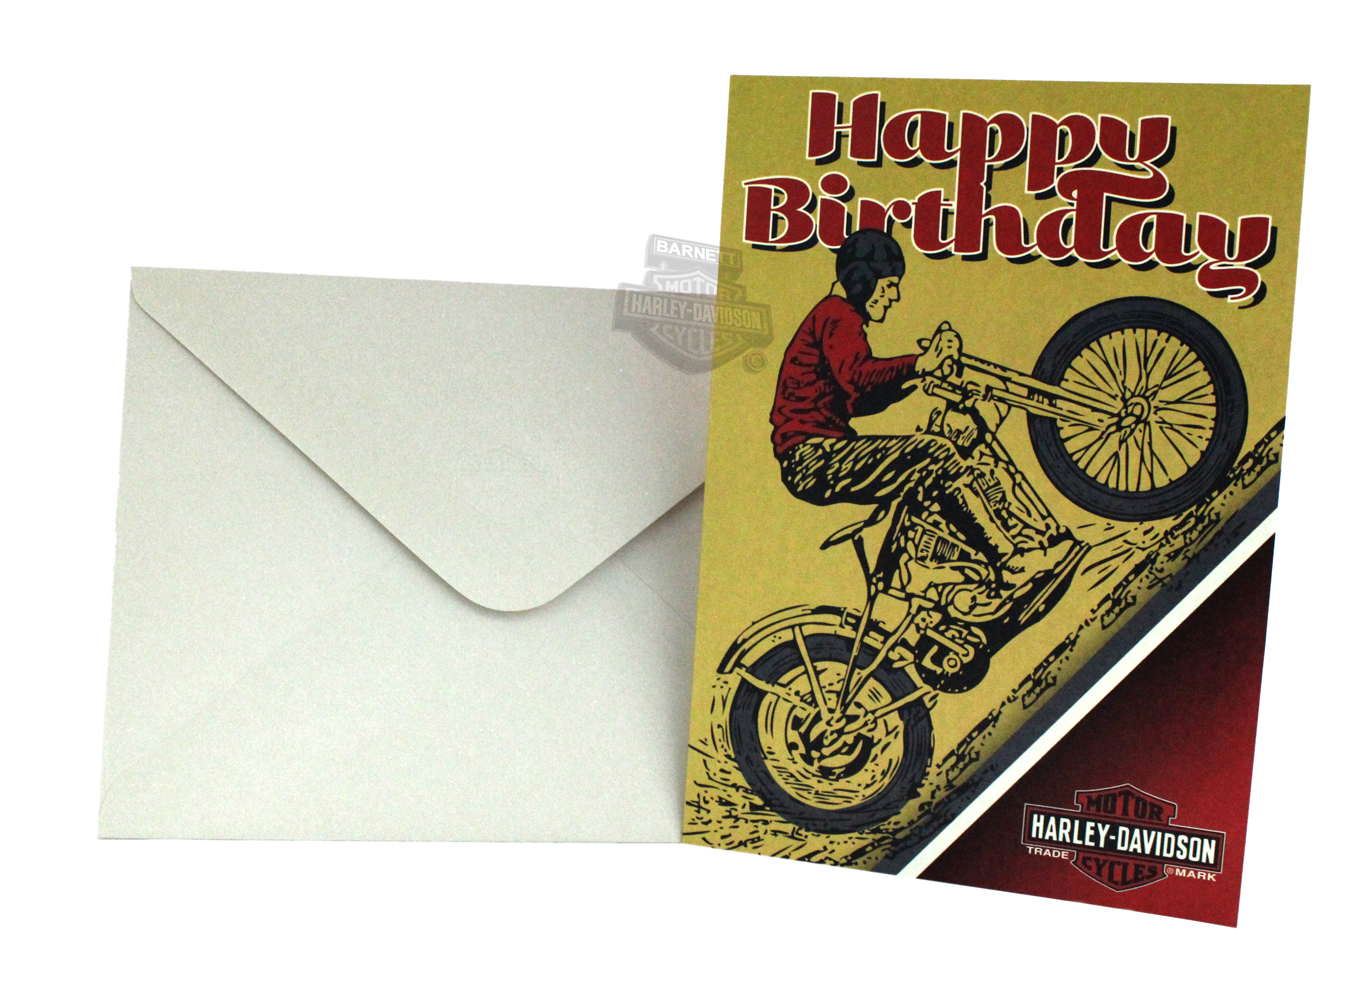 Hdl 20005 harley davidson 174 not over the hill birthday greeting card